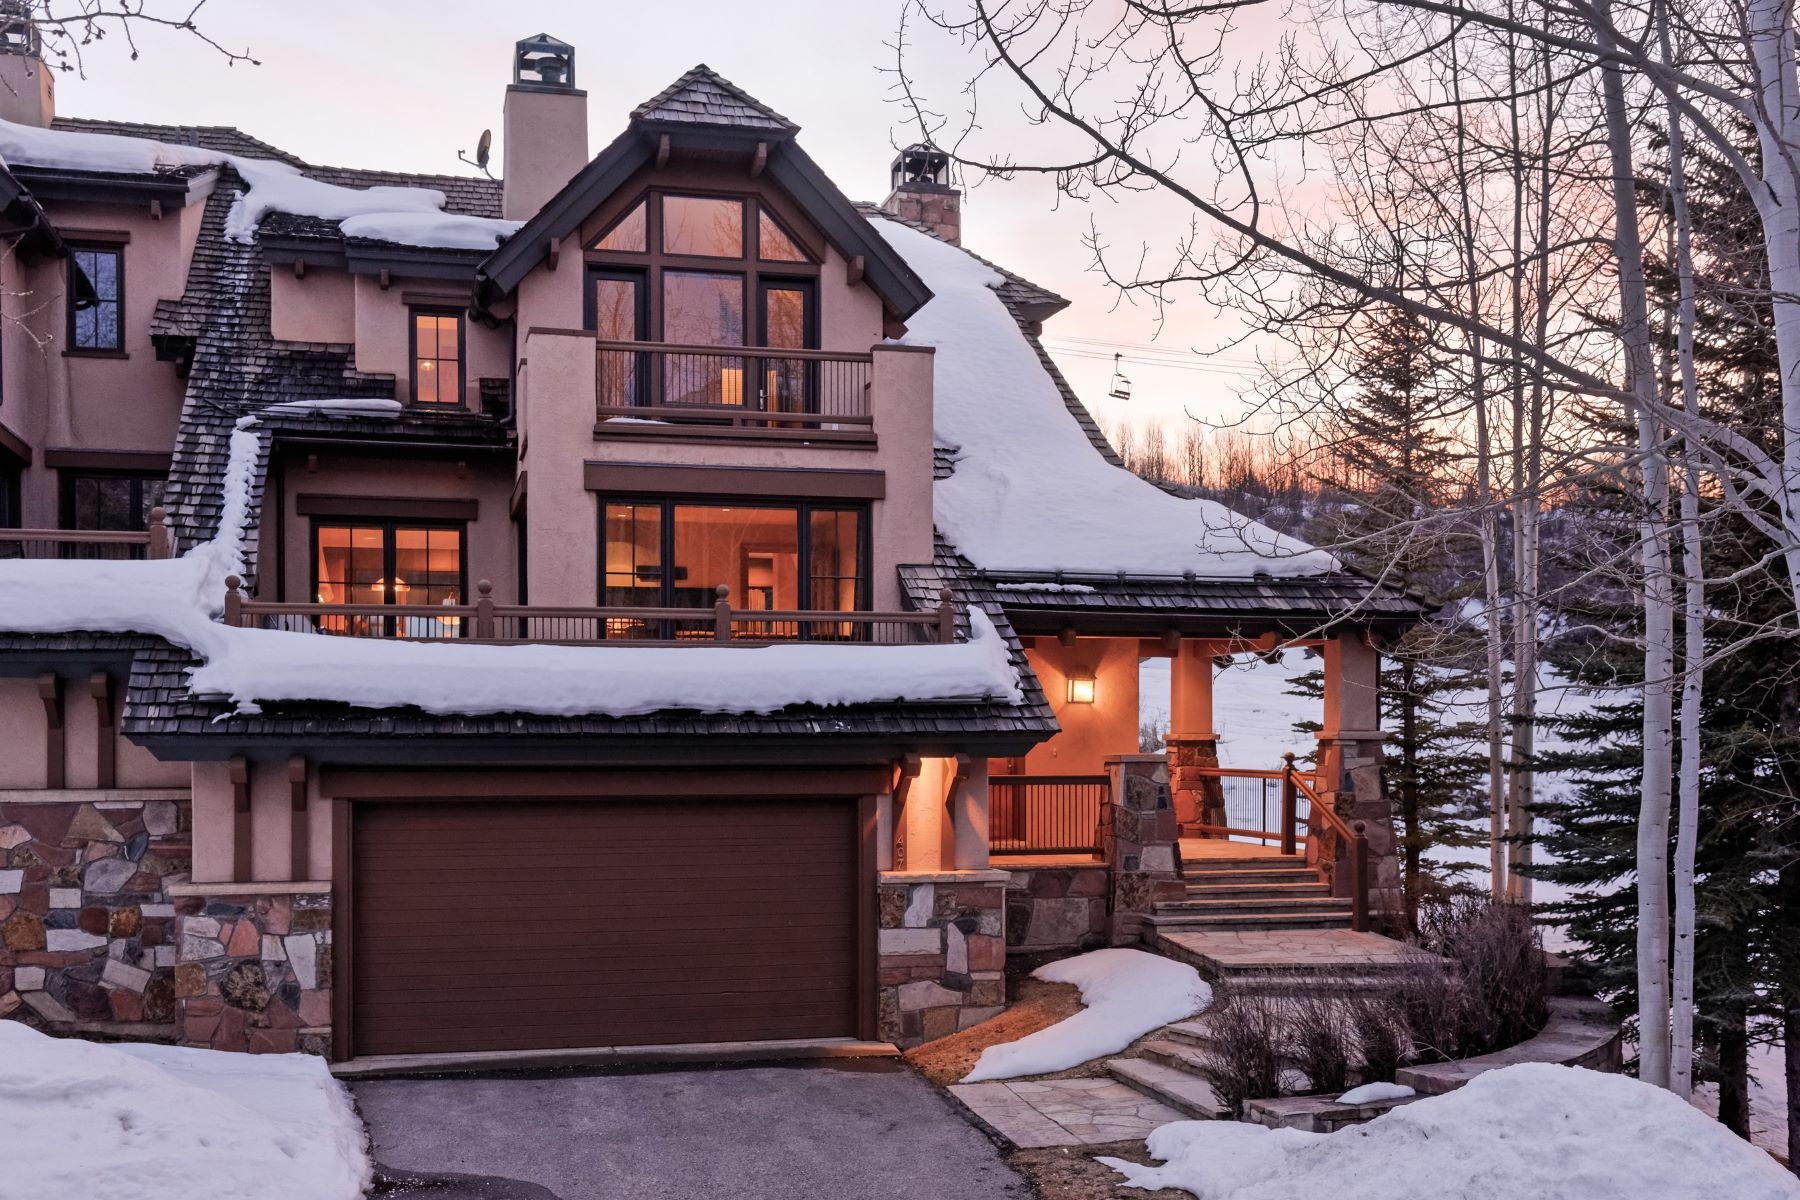 Villetta a schiera per Vendita alle ore Owl Creek Home #407 407 Burnt Mountain Drive Snowmass Village, Colorado, 81615 Stati Uniti